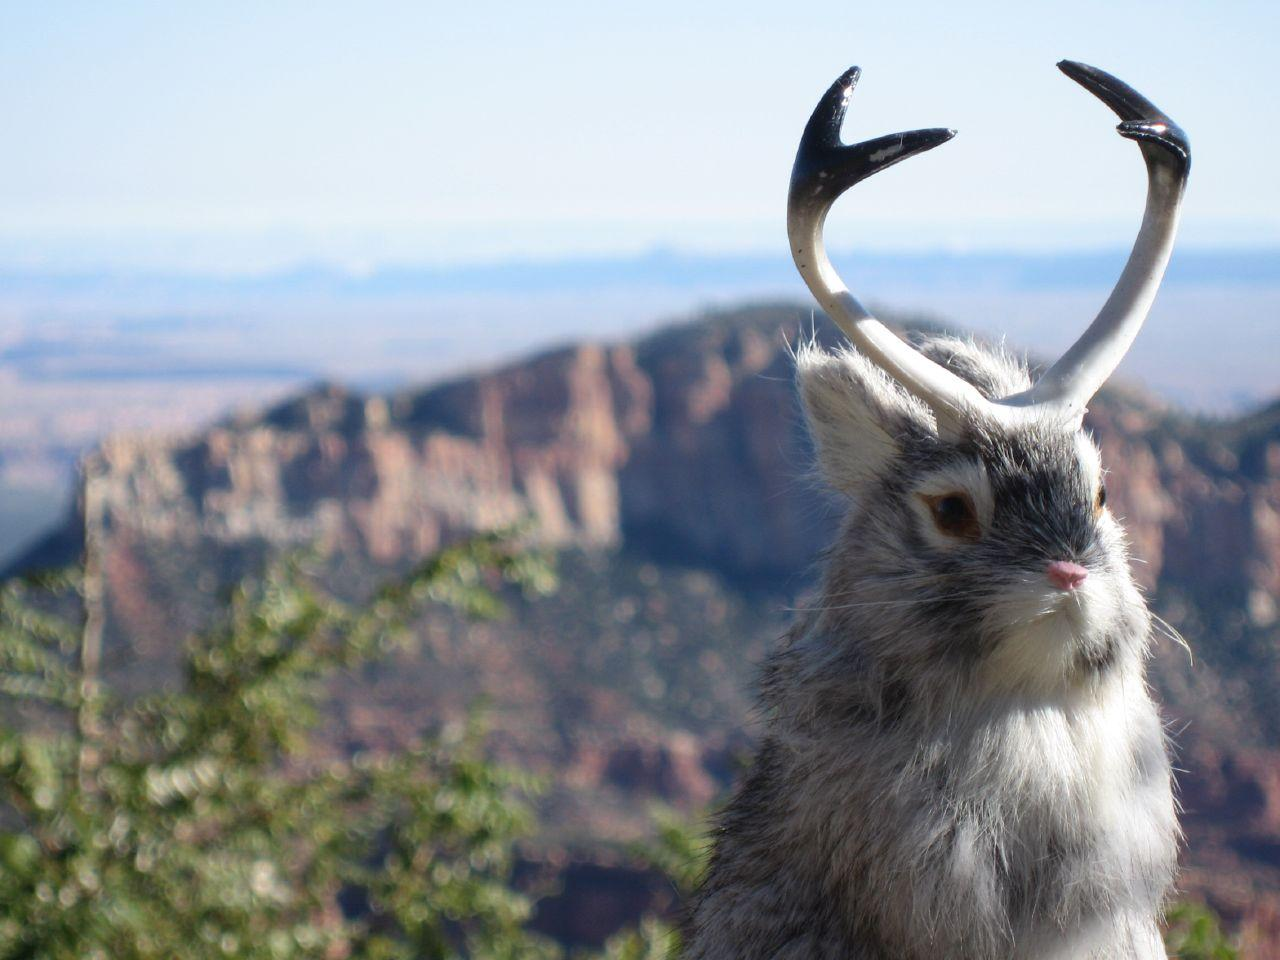 Image of Jackalope, Grand Canyon North Rim, Oct 07 by Mark Freeman on Flickr